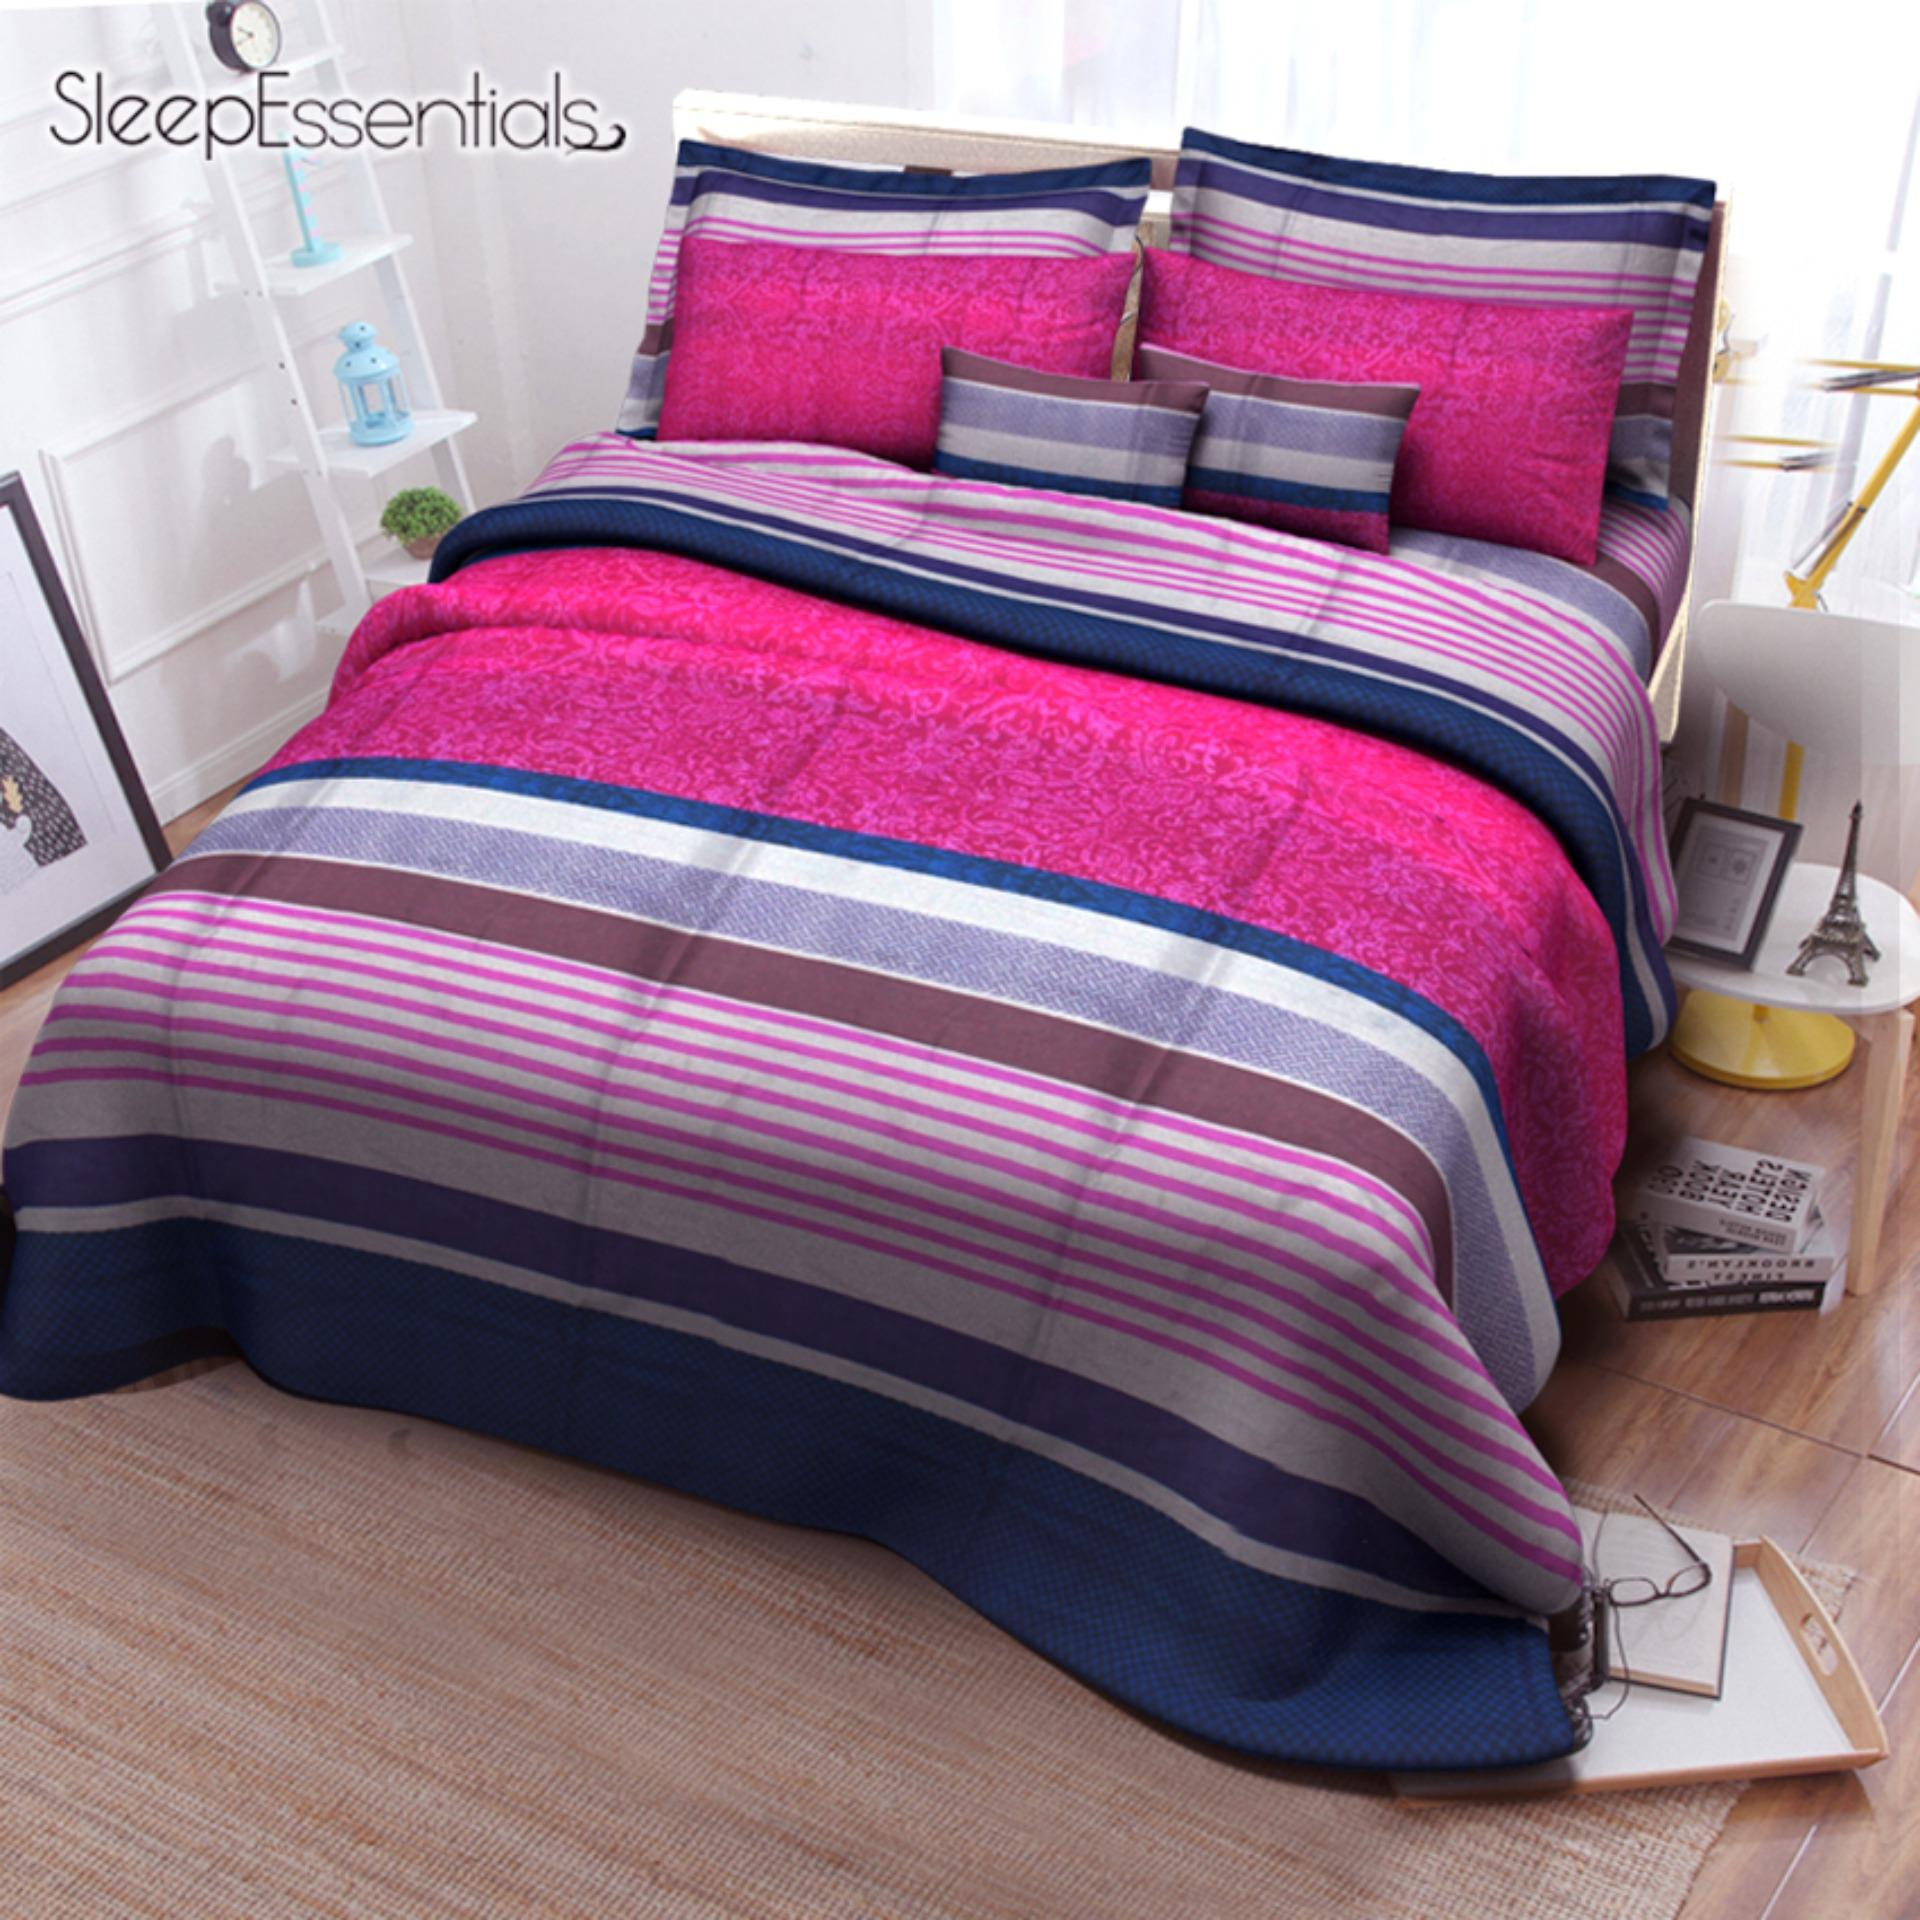 Sleep Essentials 2018 Collection 3in1 Bedsheet (2 Pillowcases 1 Fitted Sheet ) SE